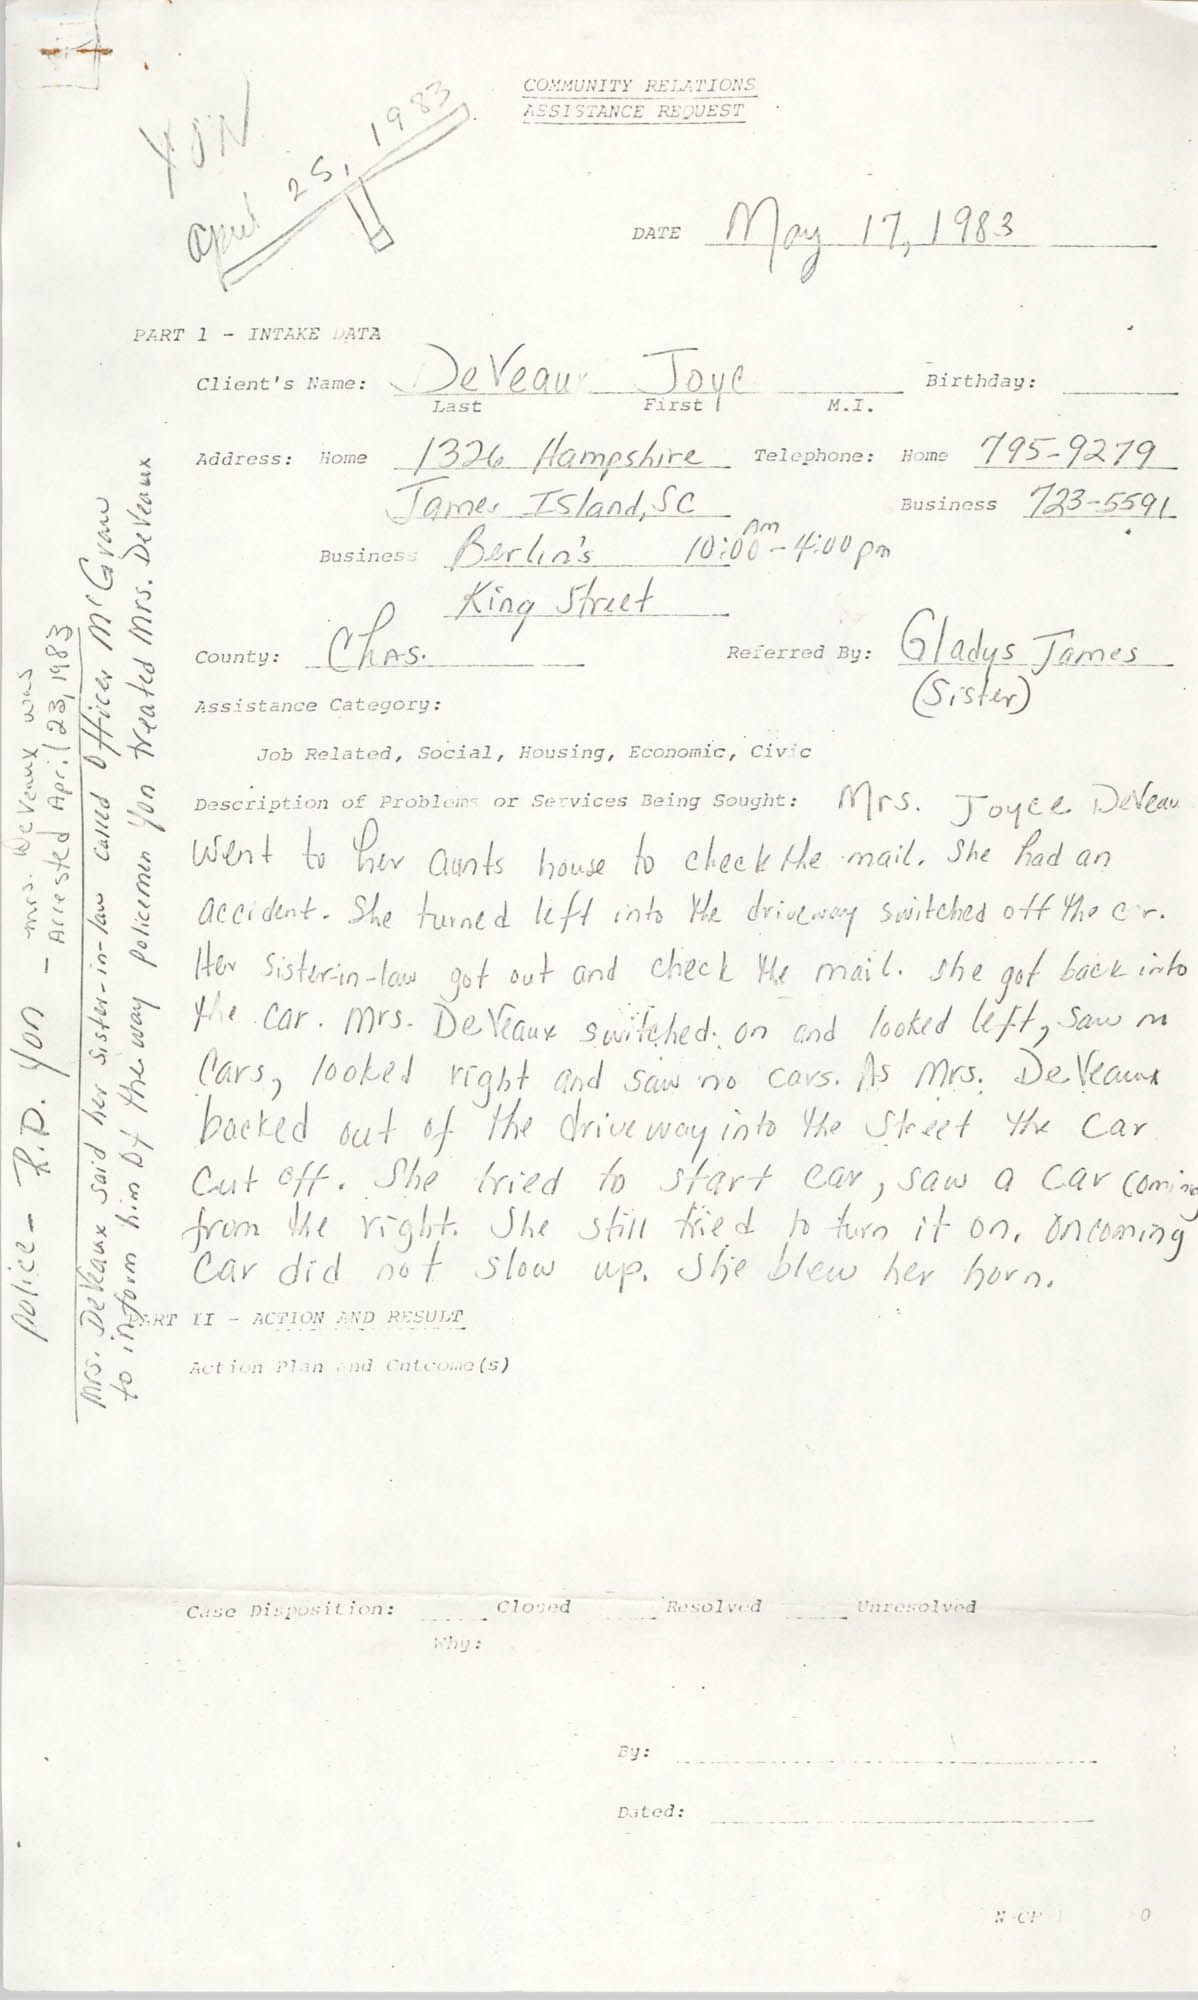 Community Relations Assistance Request, May 17, 1983